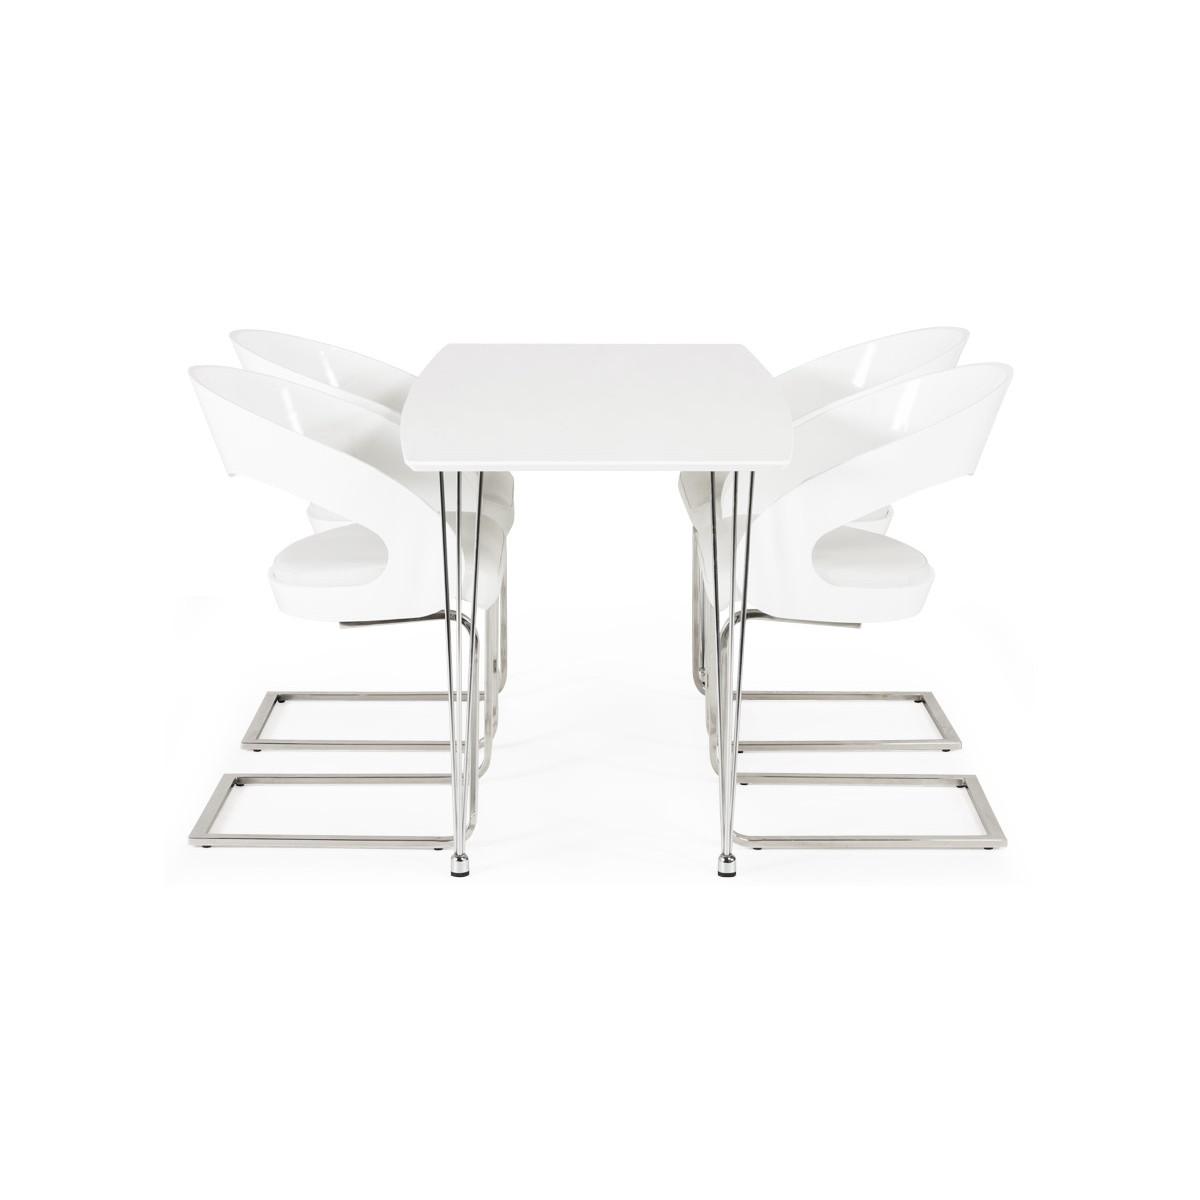 Loing design chair in lacquered wood and leatherette white english english - Chaise simili cuir blanc ...